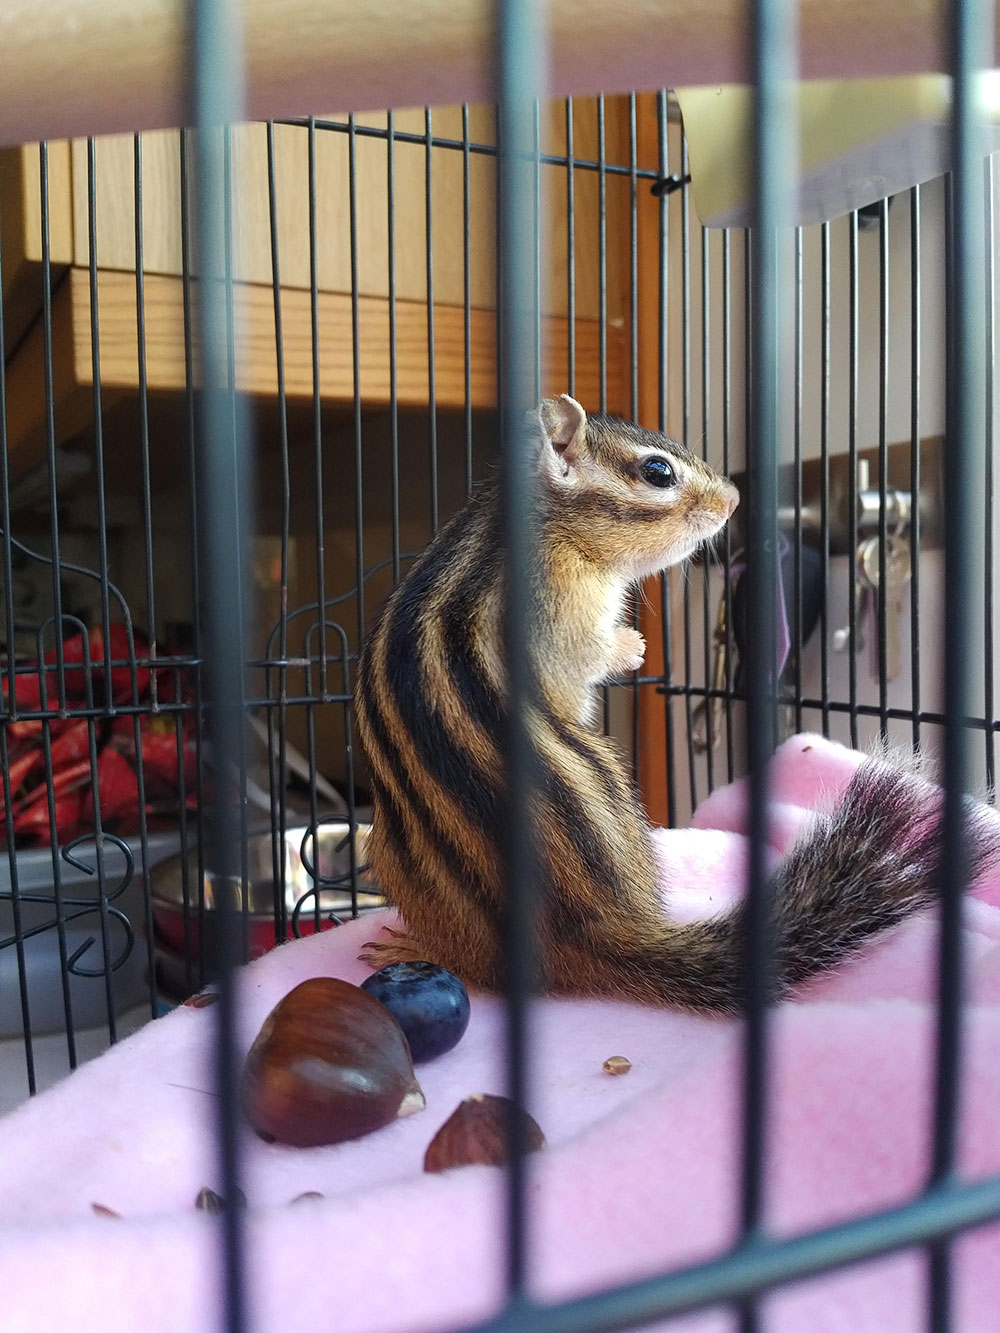 Piccolo the chipmunk has striking markings and a wonderful fluffy tail. She loves snacking on fresh fruit and nuts.